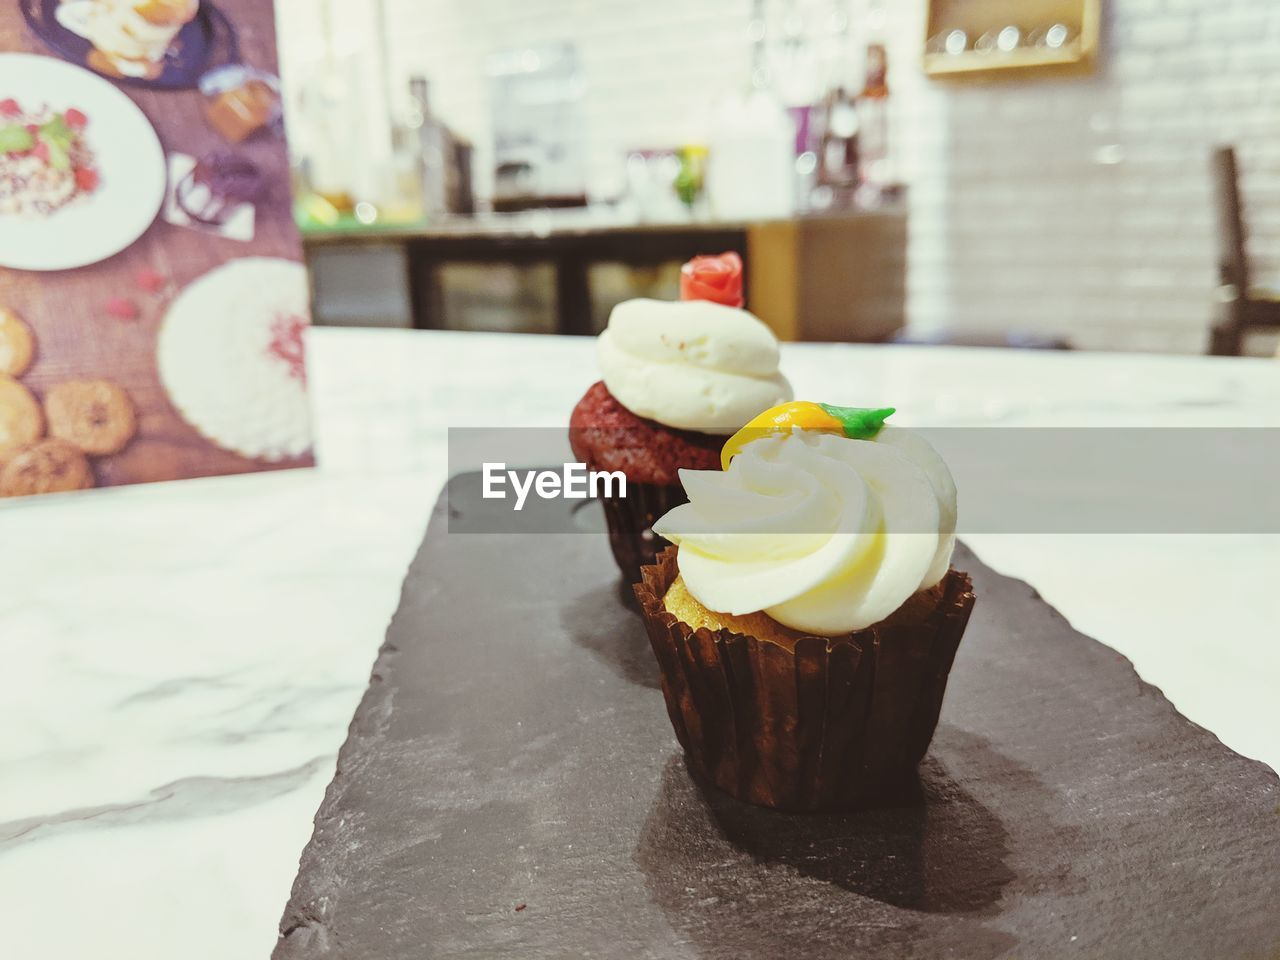 CLOSE-UP OF CUPCAKES WITH ICE CREAM